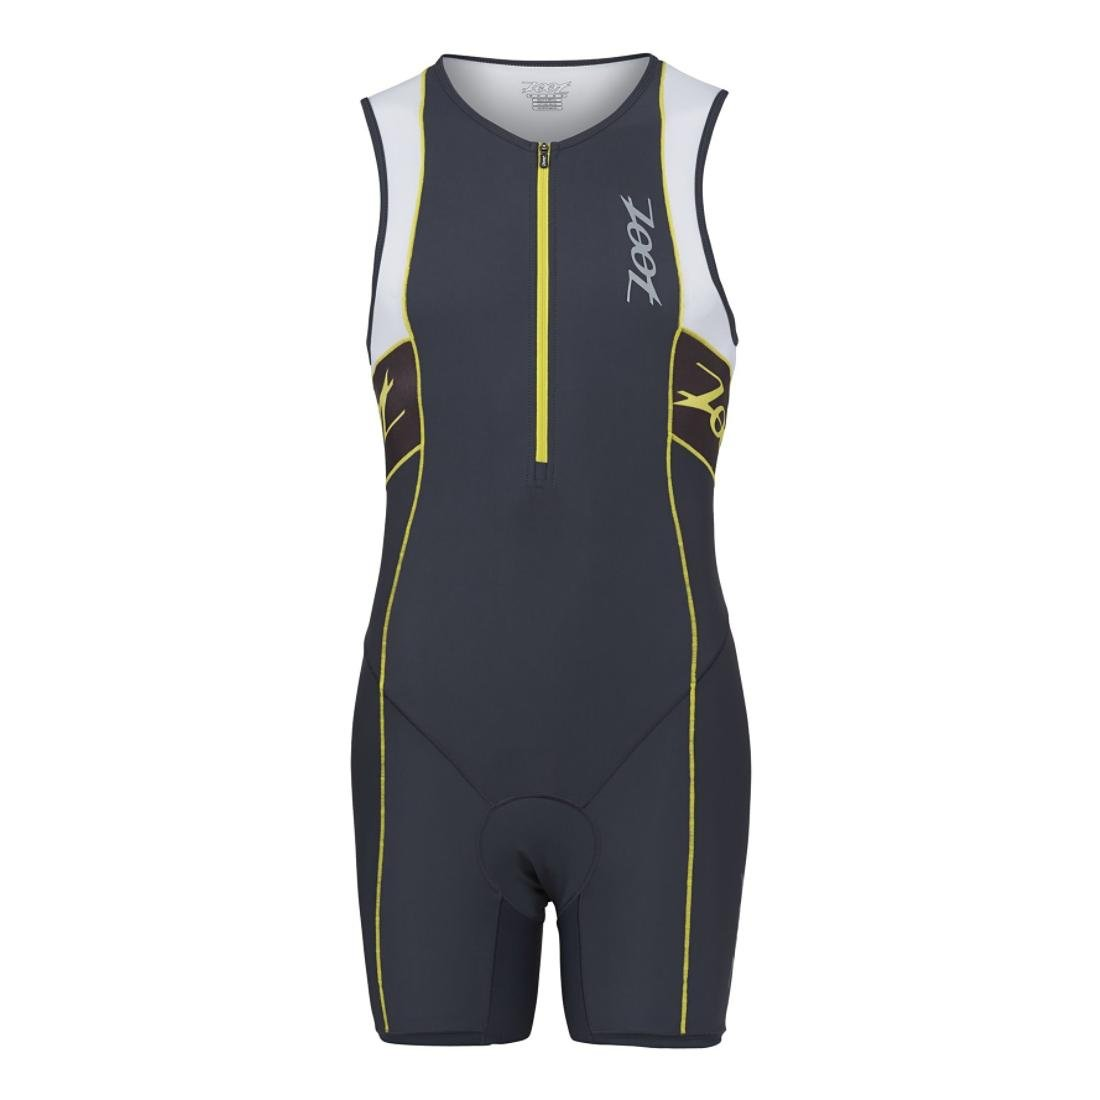 Zoot Damen triathlon Performance – Traje de neopreno para ...